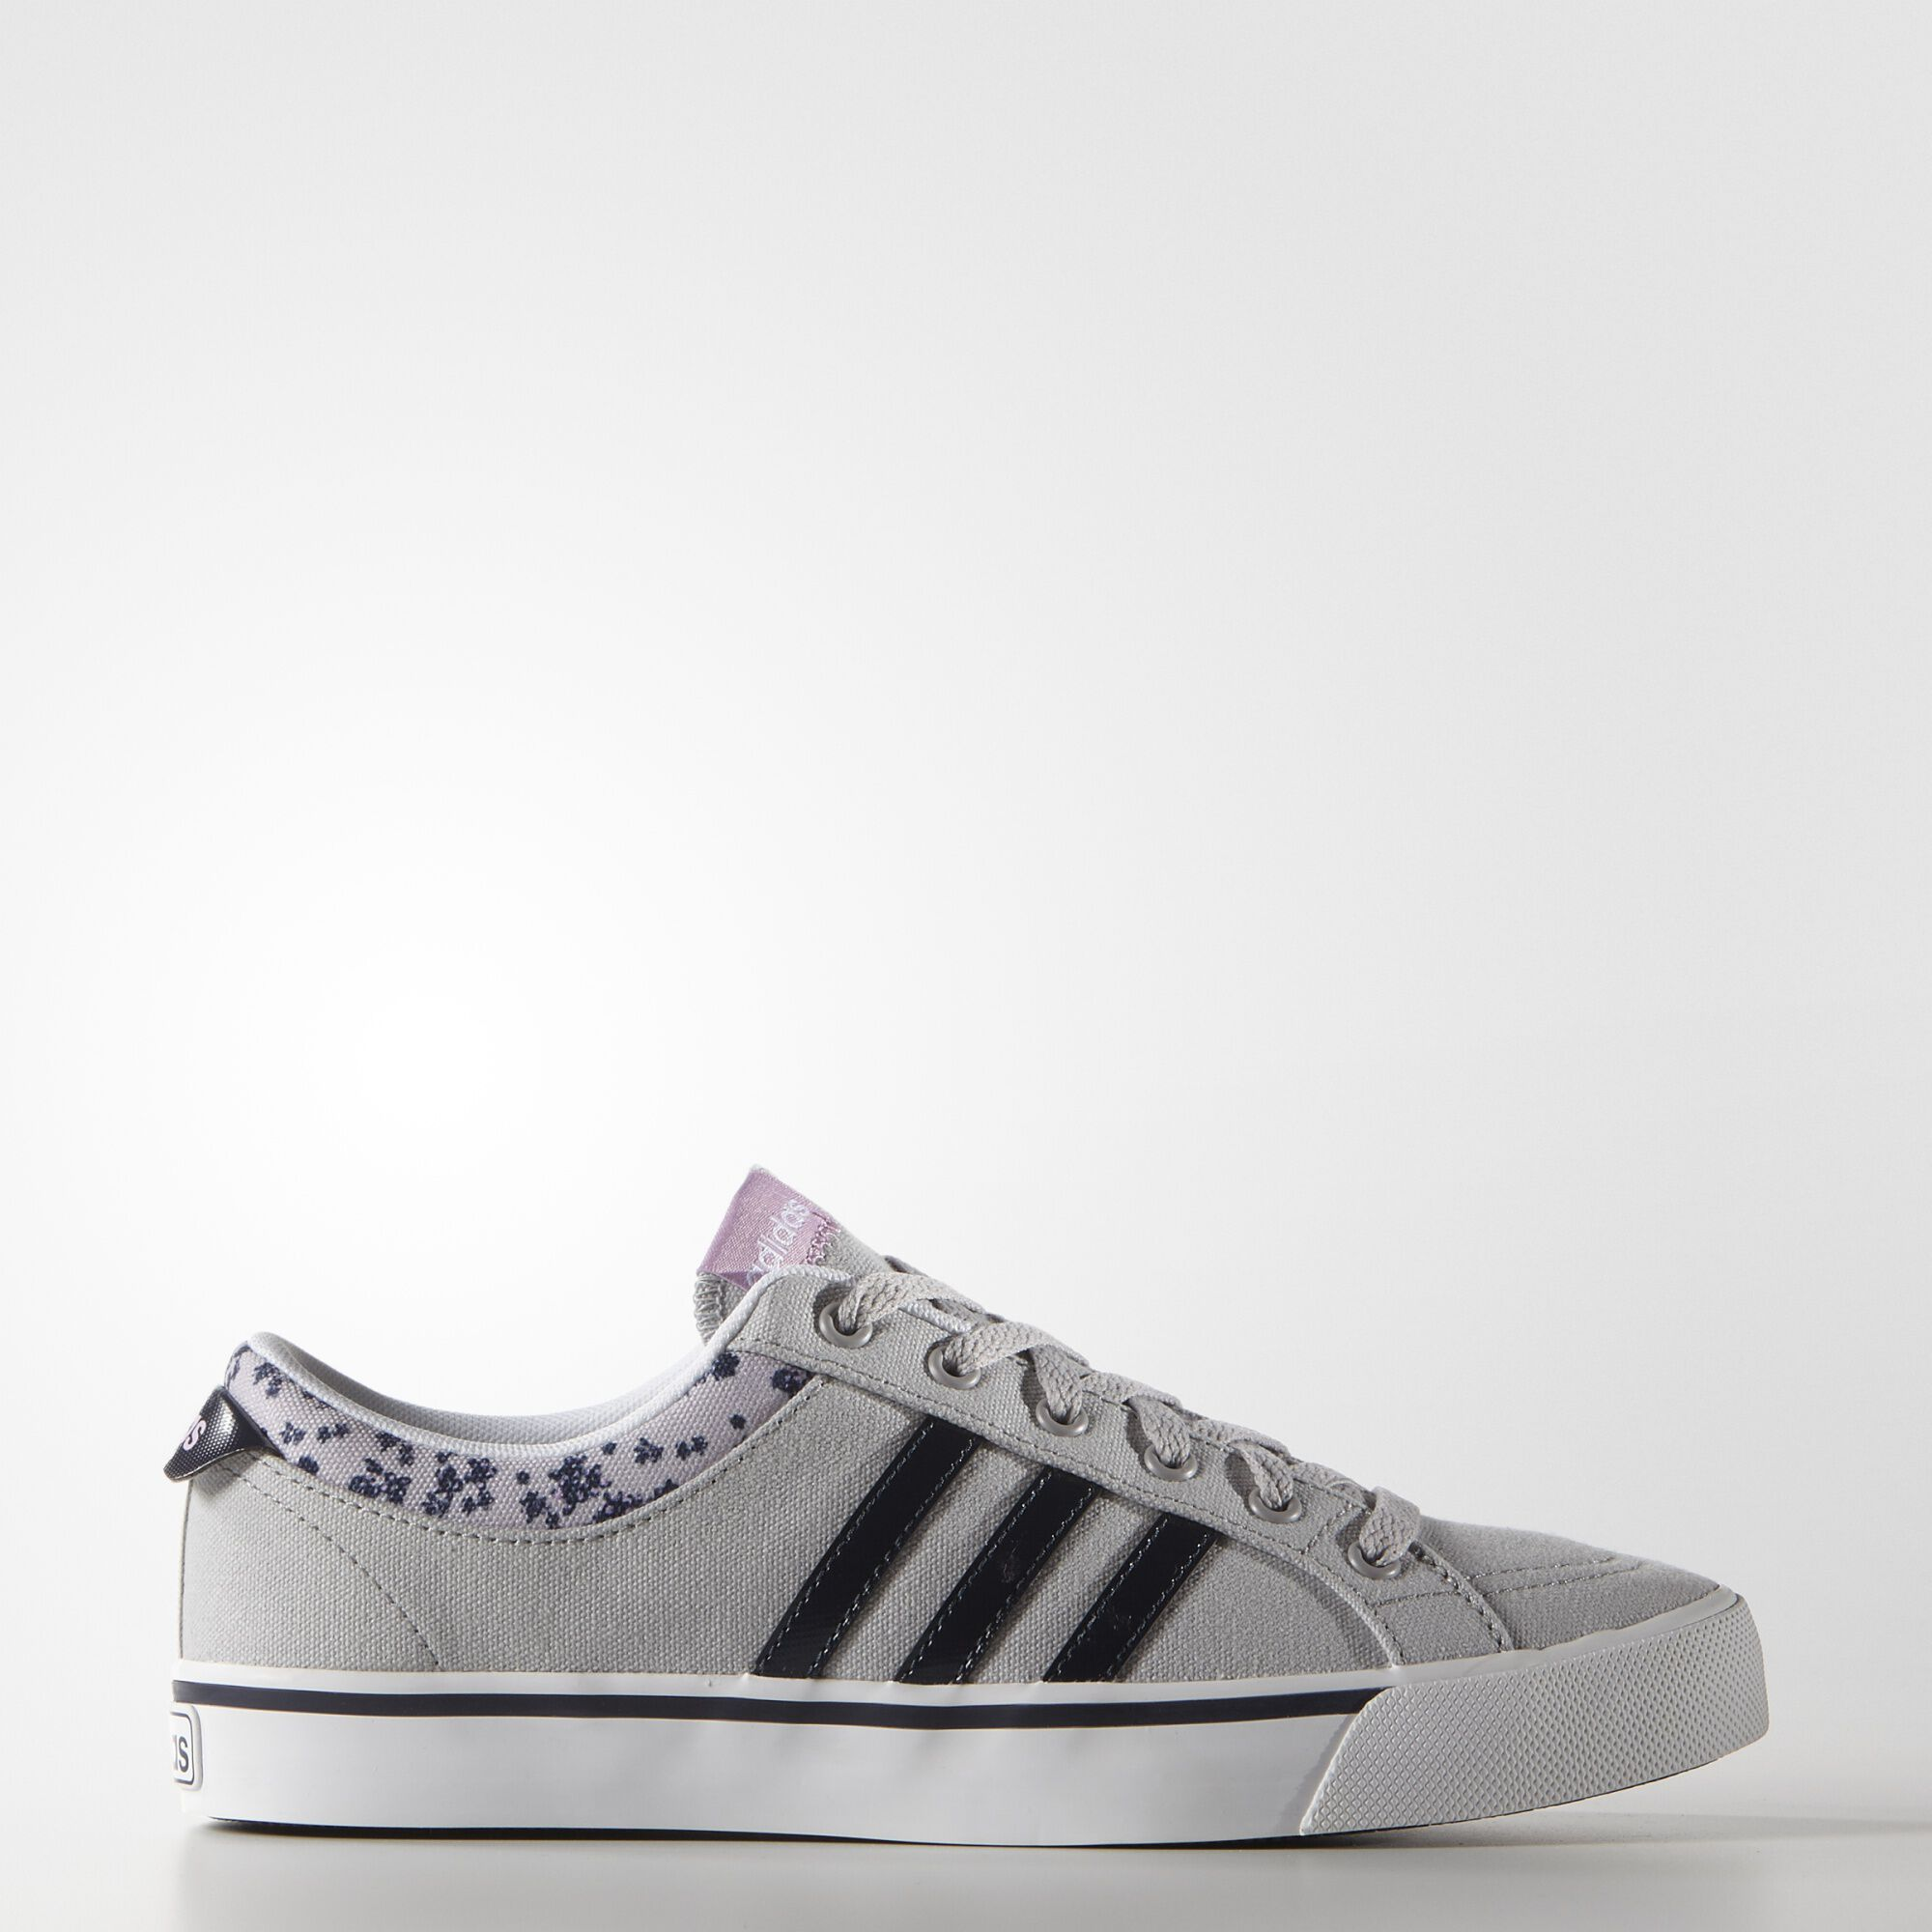 adidas , Zapatillas neo PARK ST Clear Onix / Collegiate Navy / Light Orchid  S15 F99526